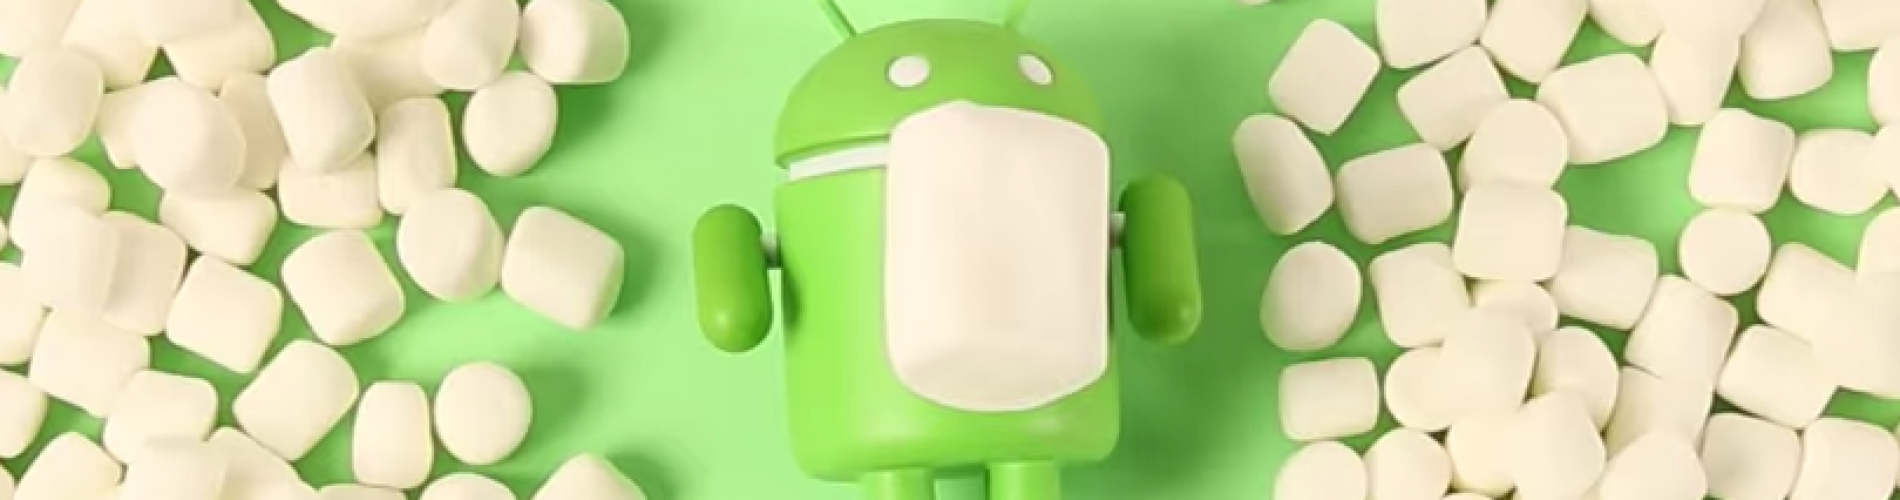 Samsung now working on Android 6.0 Marshmallow for some devices